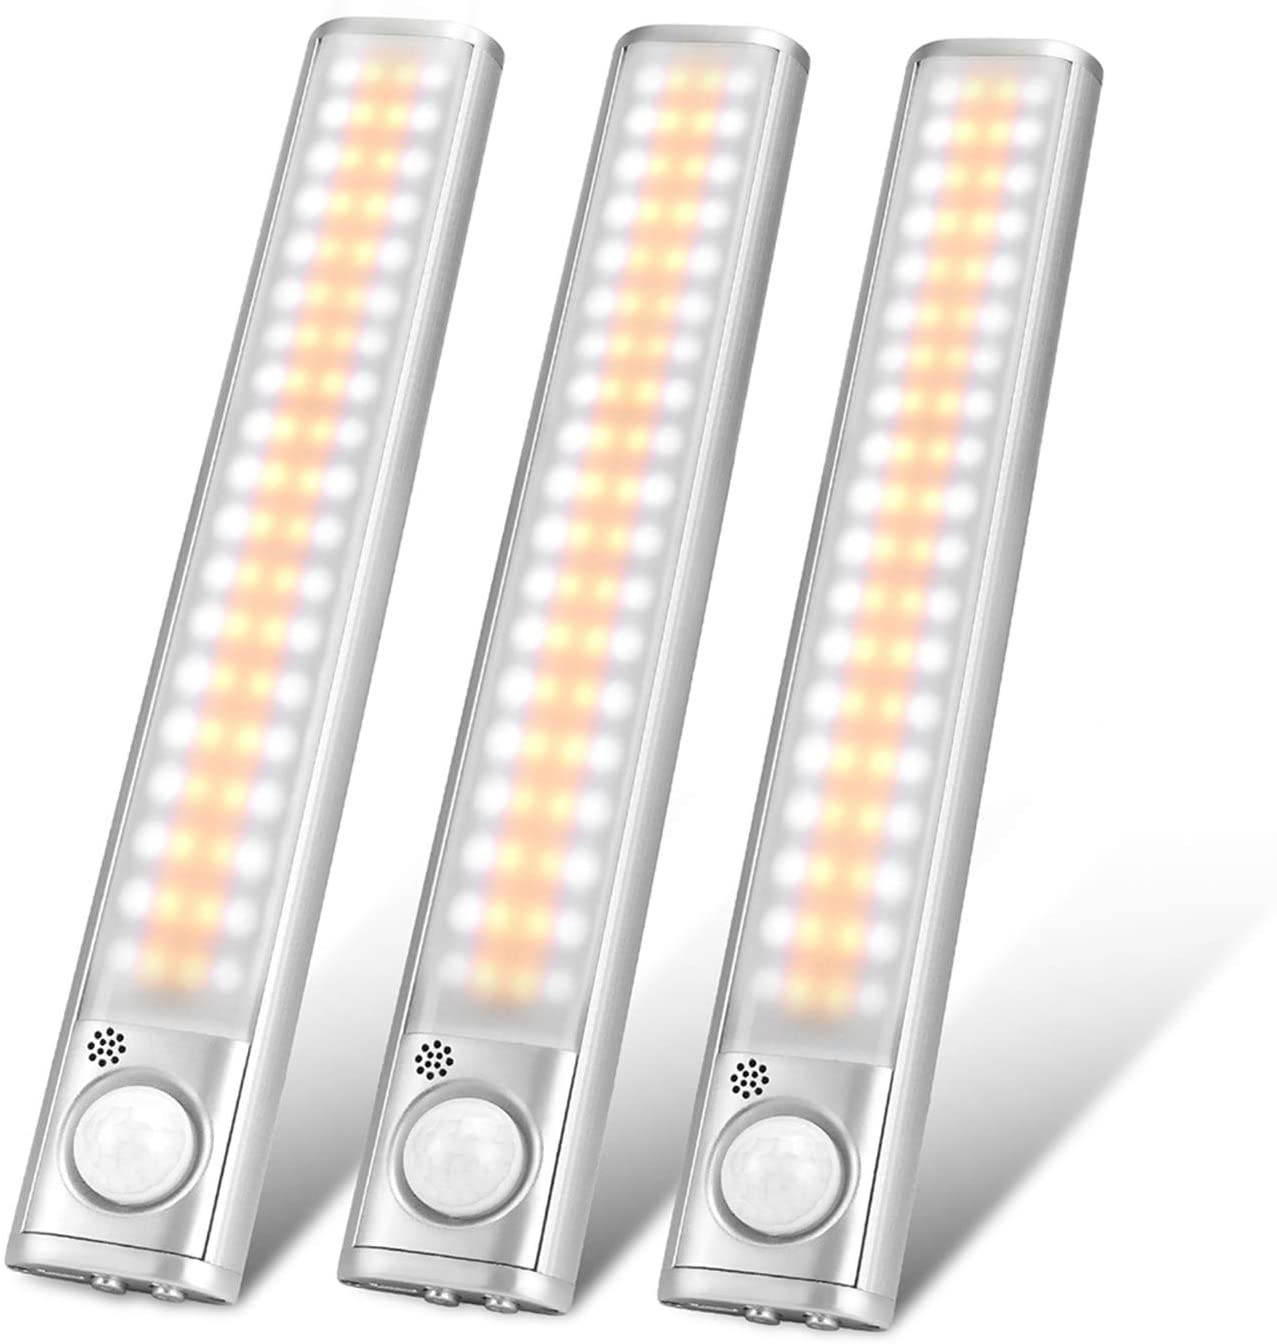 Under Cabinet Lighting 80 LED Closet Light, Motion Sensor Lights Indoor USB Rechargeable Dimmable Wireless Stick-on Night Light Bar for Kitchen, Wardrobe, Garage, Stairs, Bedroom (3 Packs)